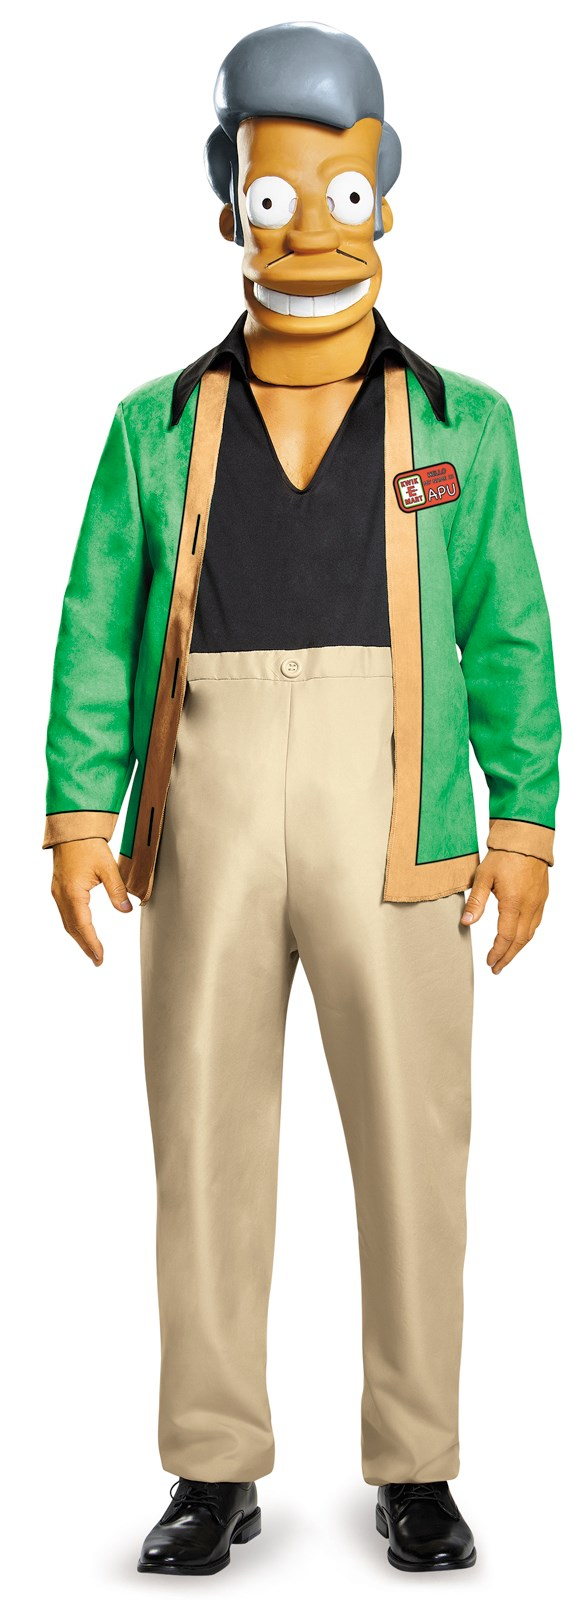 The Simpsons: Deluxe Apu Kwik E Mart Costume For Adults